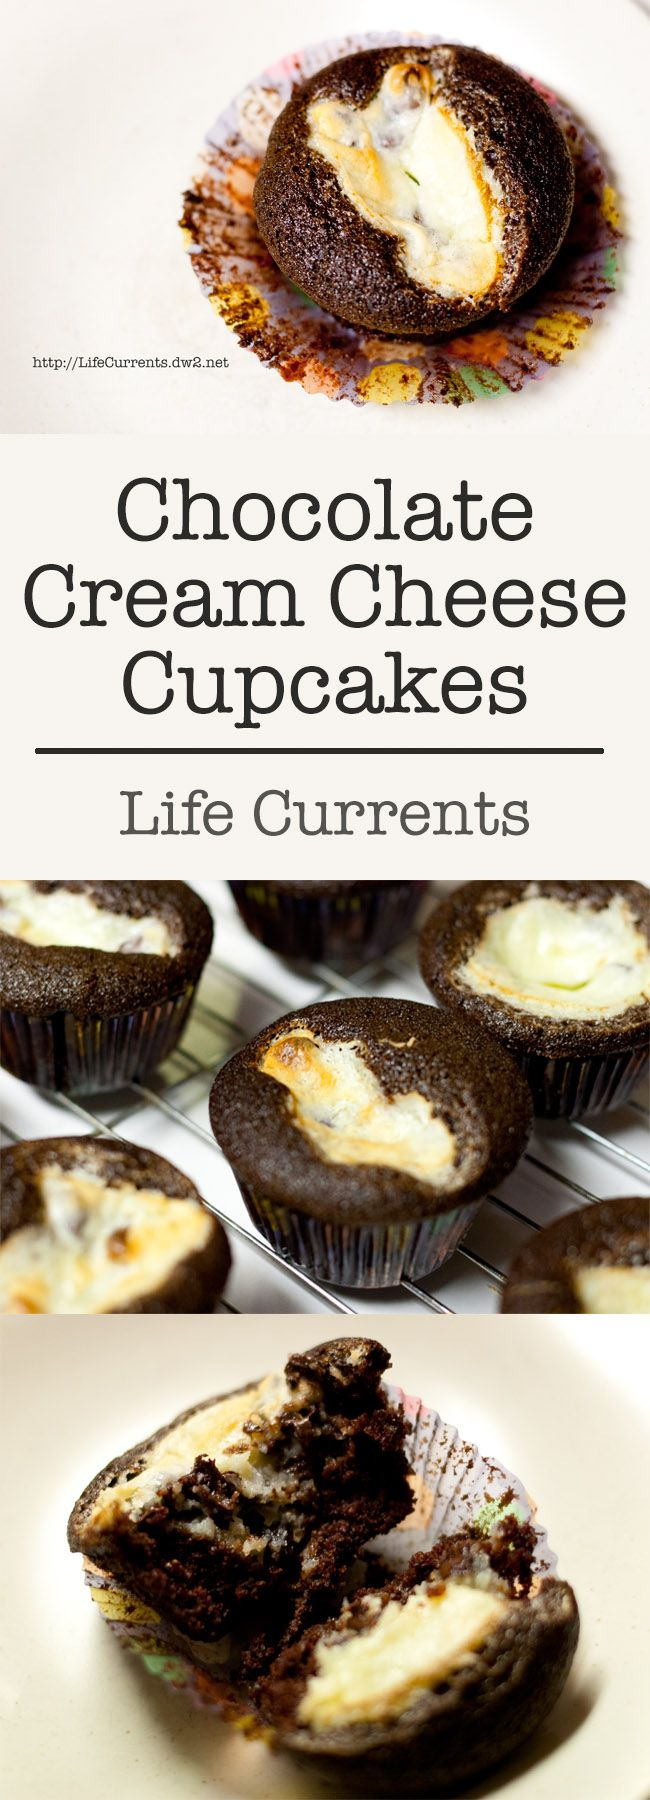 Birthday Weekend ... with Cupcakes and a recipe for Chocolate Cream Cheese Cupcakes & another recipe for Coconut-Lemon Mini Cupcakes with Lemon-Cream Cheese Frosting